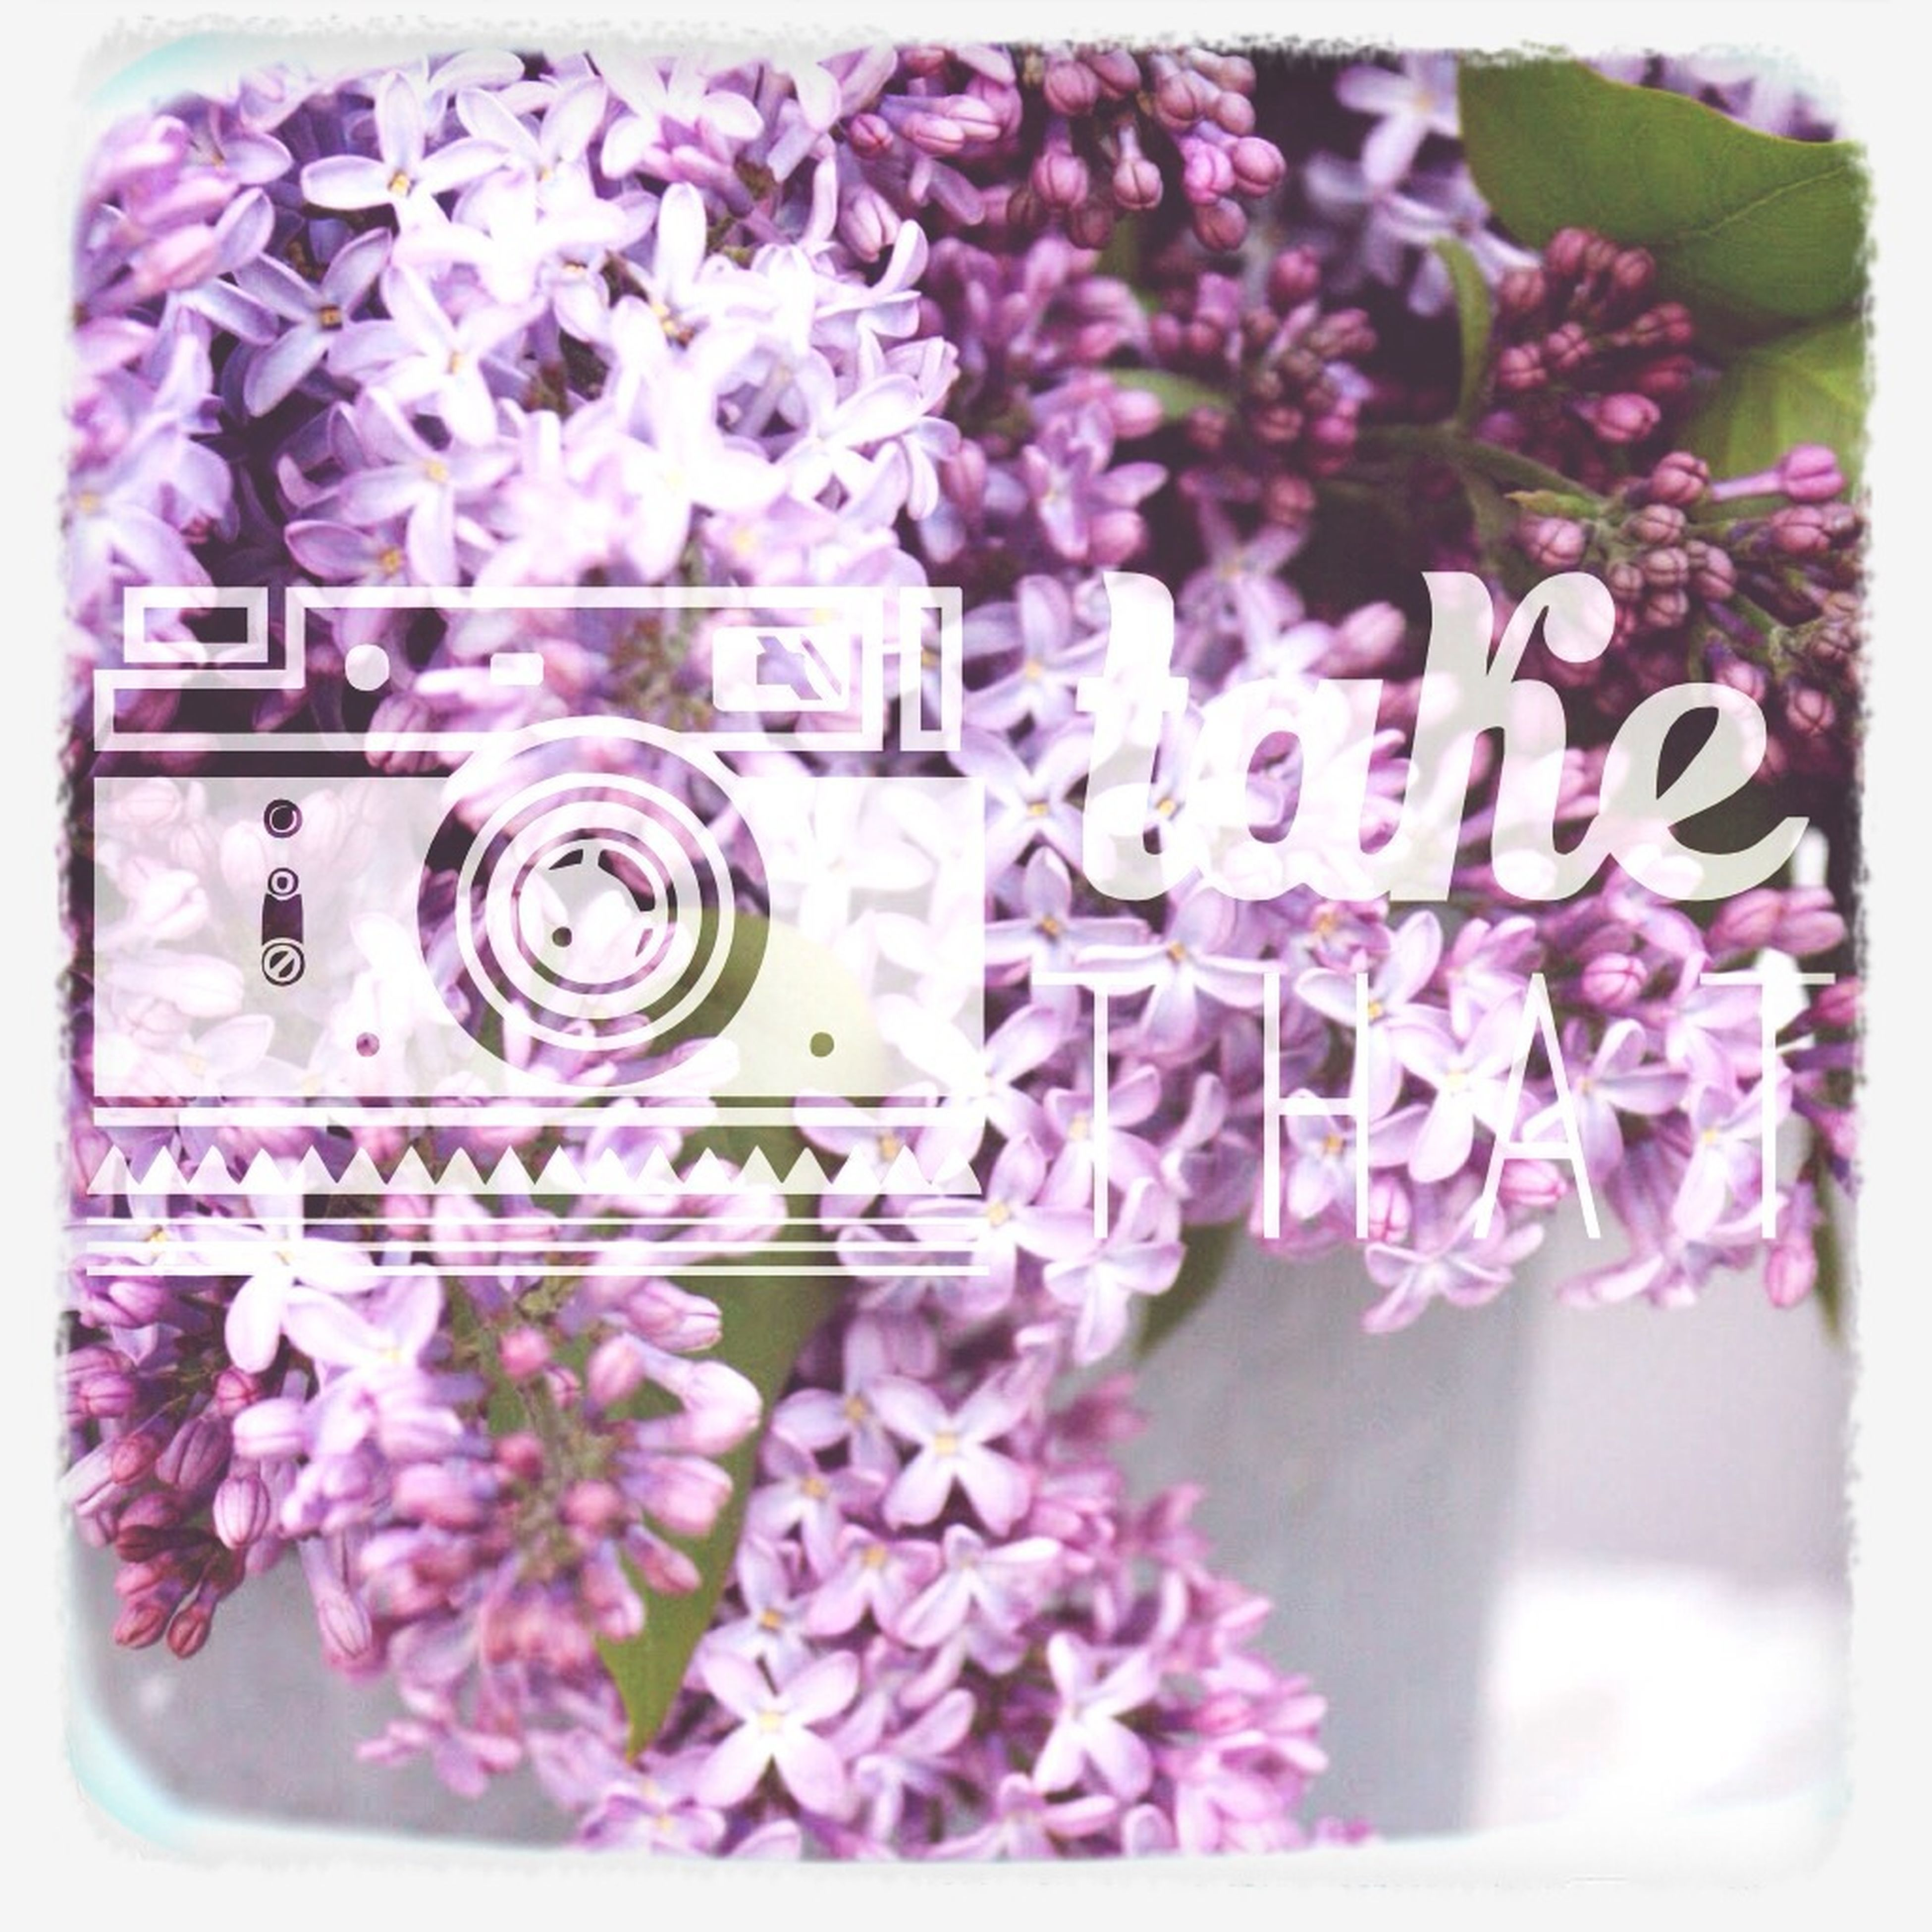 transfer print, flower, auto post production filter, pink color, freshness, close-up, fragility, plant, growth, petal, text, built structure, flower head, wall - building feature, day, building exterior, focus on foreground, nature, western script, no people